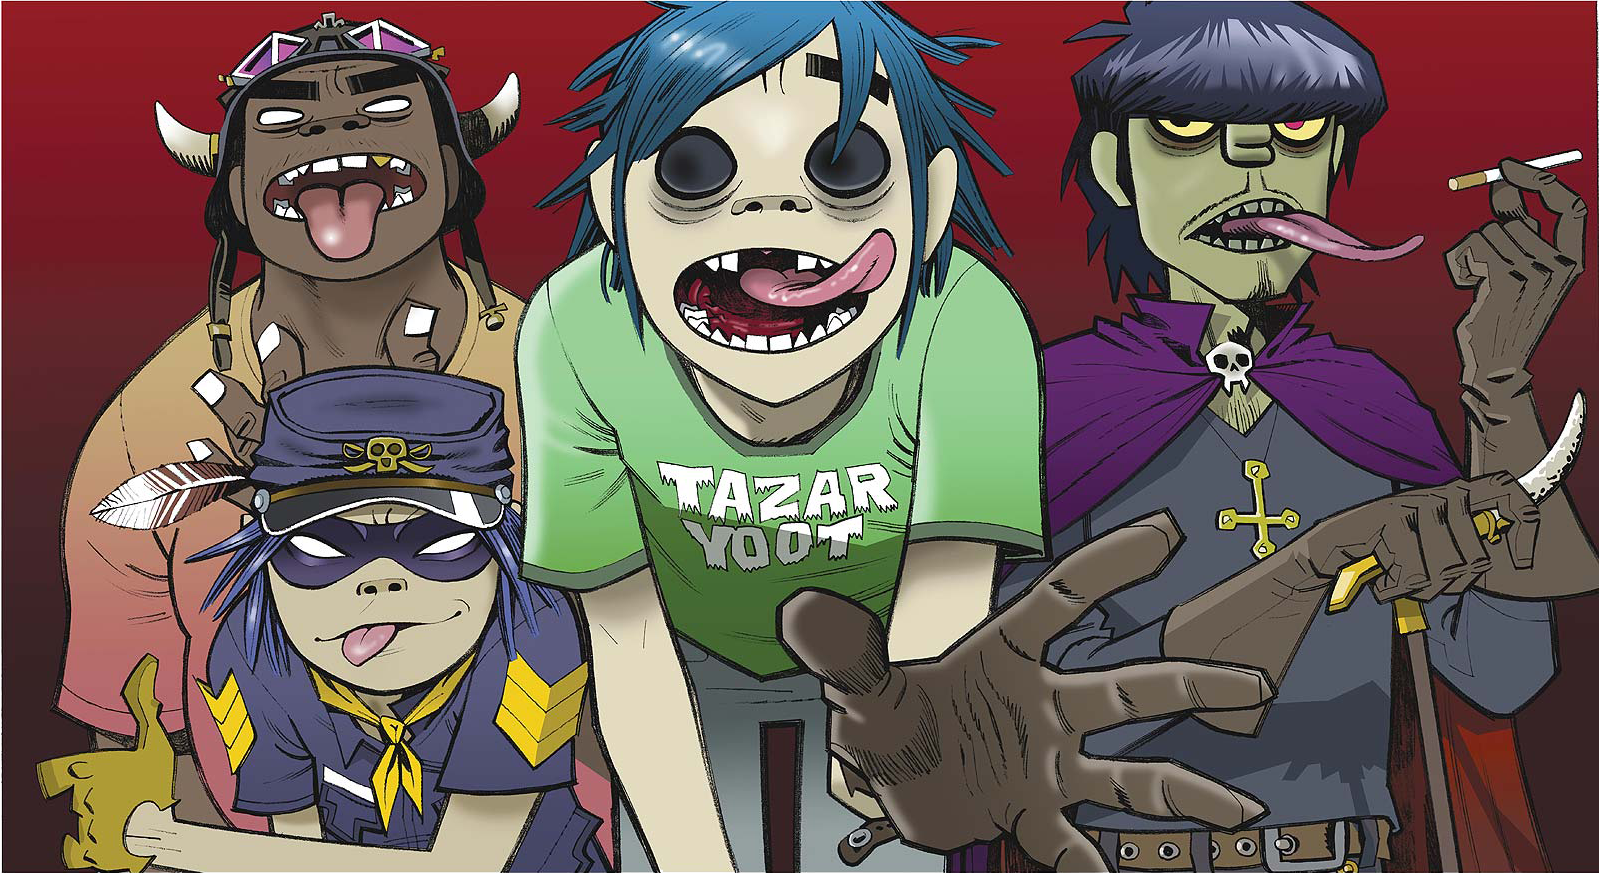 gorillaz-are-coming-back-with-a-2017-album-and-we-feel-good-01.png